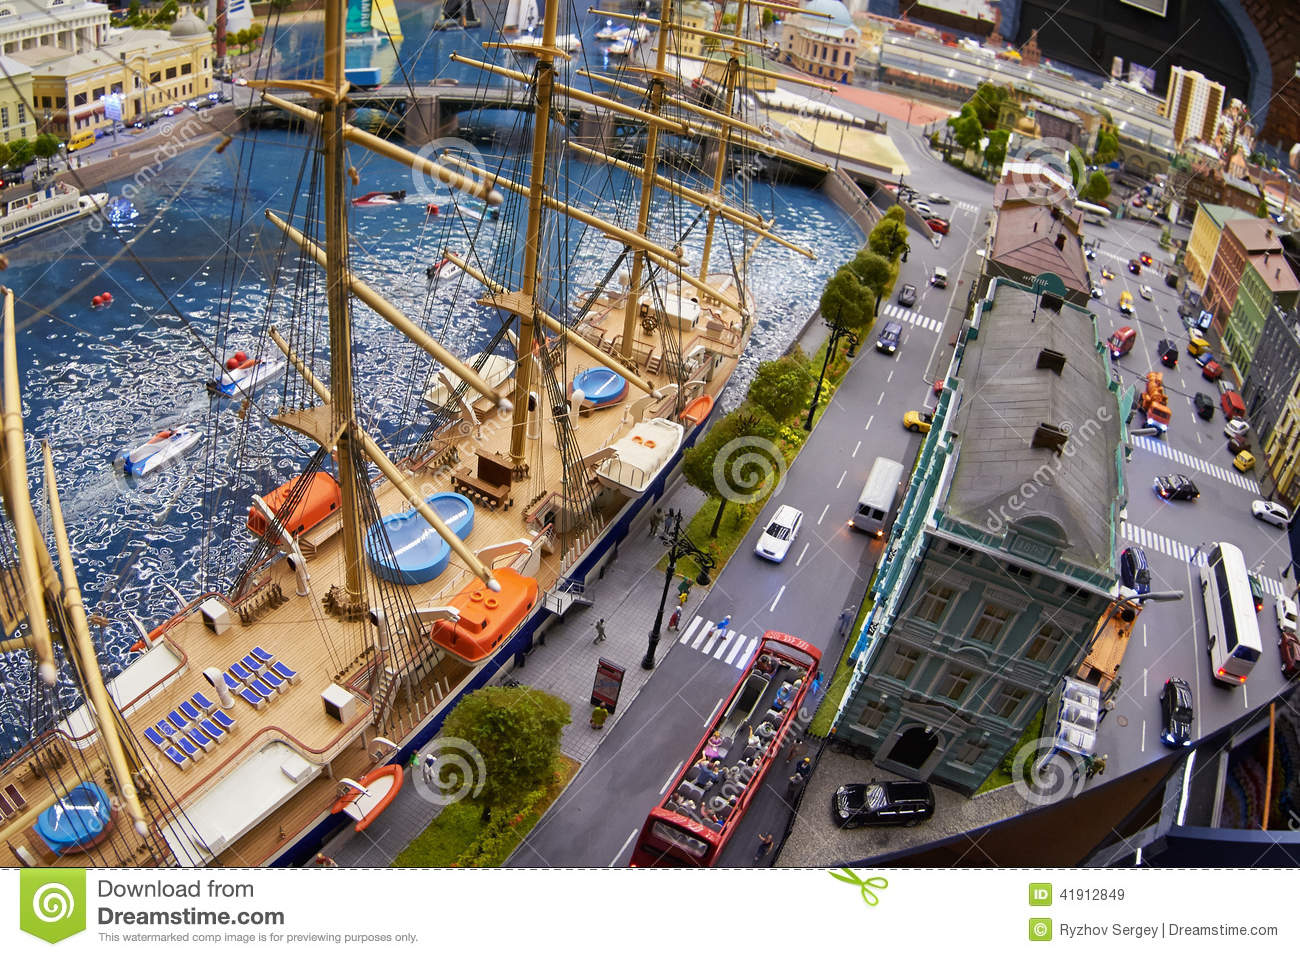 Pictures Of Toy Models Of Cities : Miniature model of the city with a dock sailing and toy